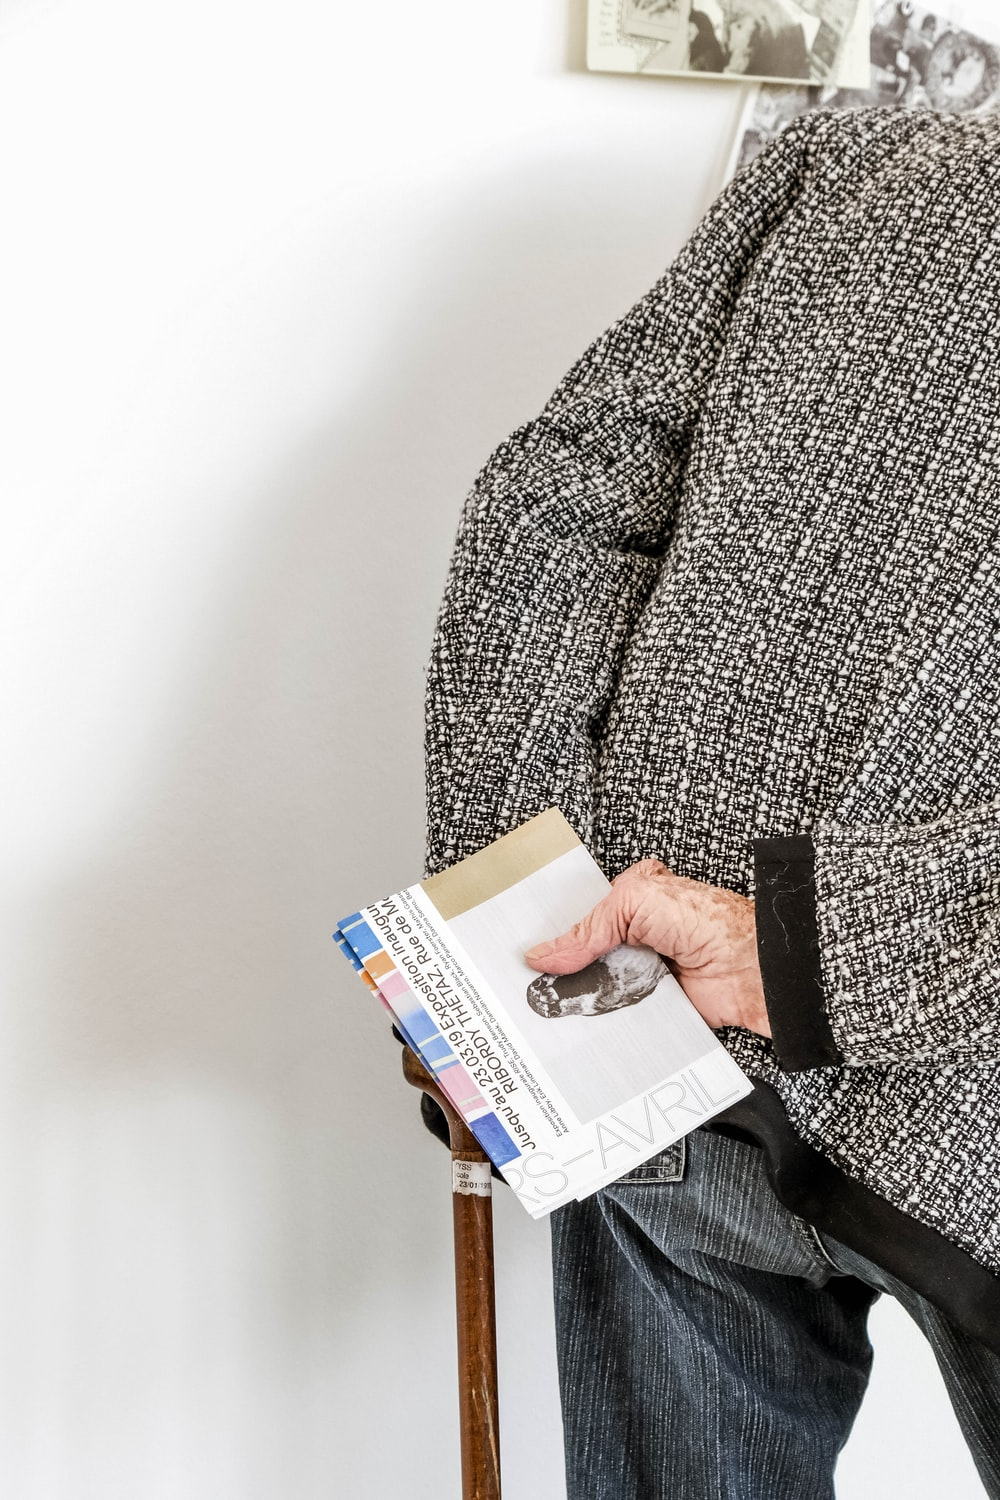 person holding brochure